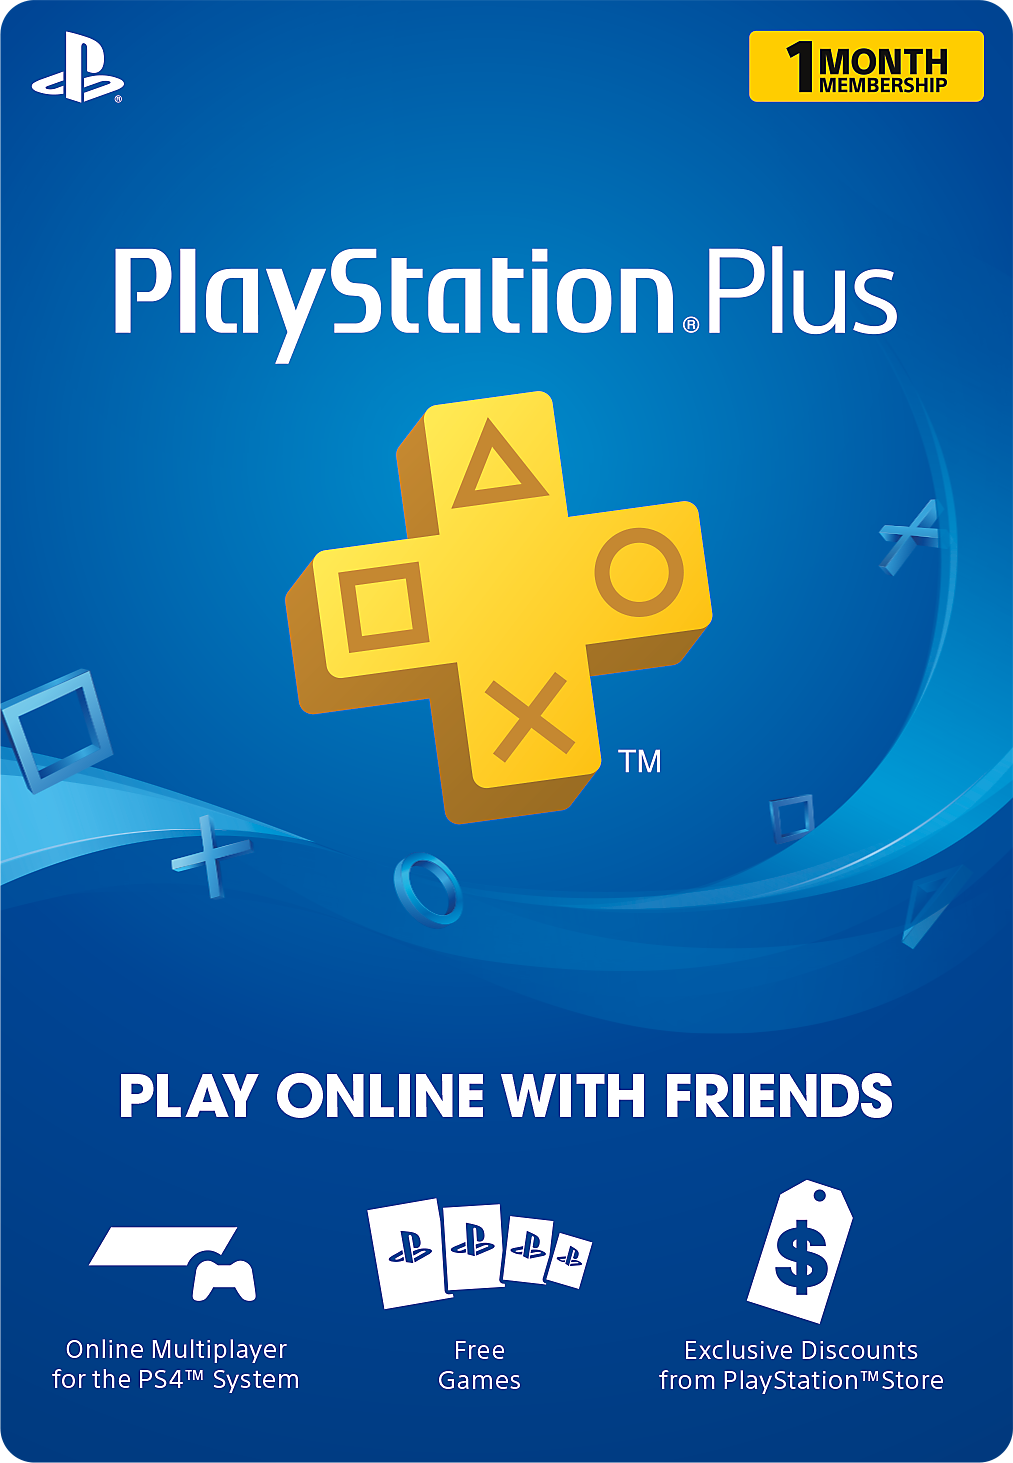 Buy a digital card below to download a PlayStation Plus membership code. Redeem your code to unlock your new membership, or gift it to a friend!